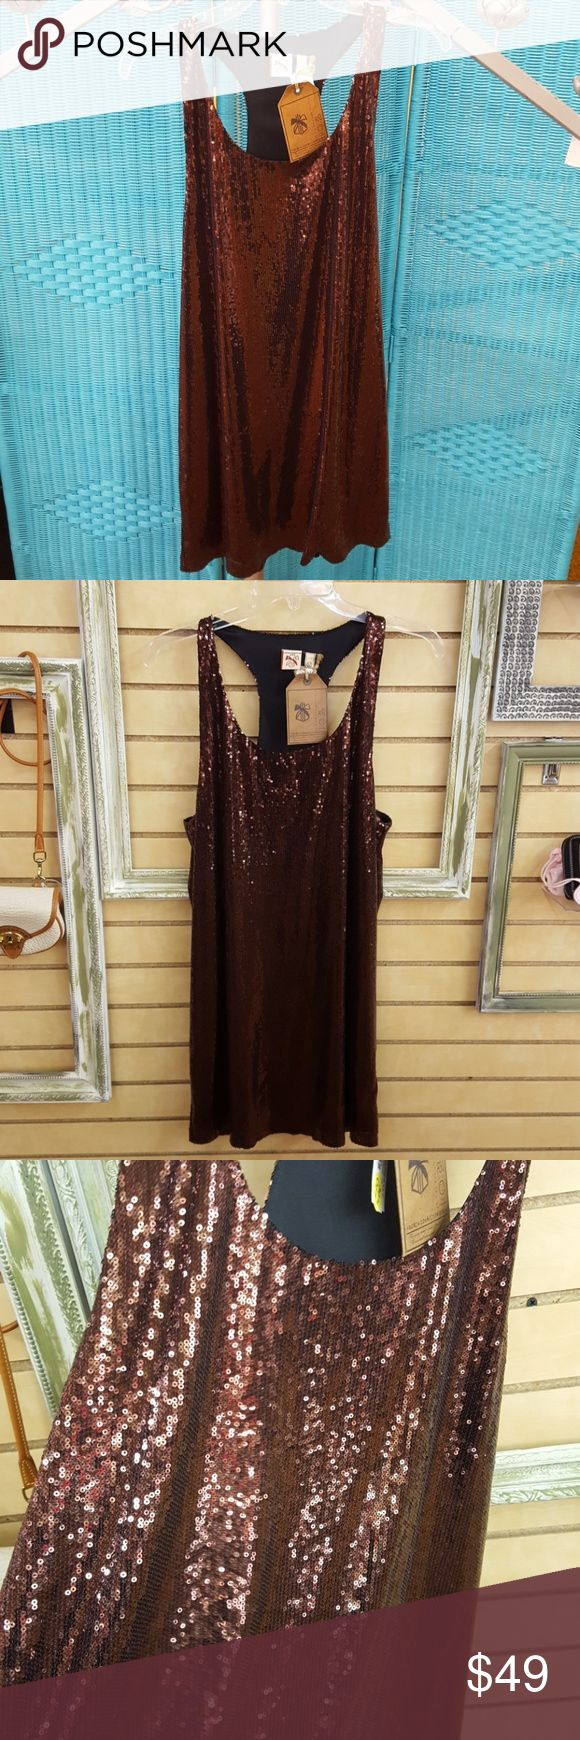 French Connection Denim Brown Sequin Dress NWT New with tags! Gorgeous brown sequin sleeveless French Connection dress. French Connection Dresses